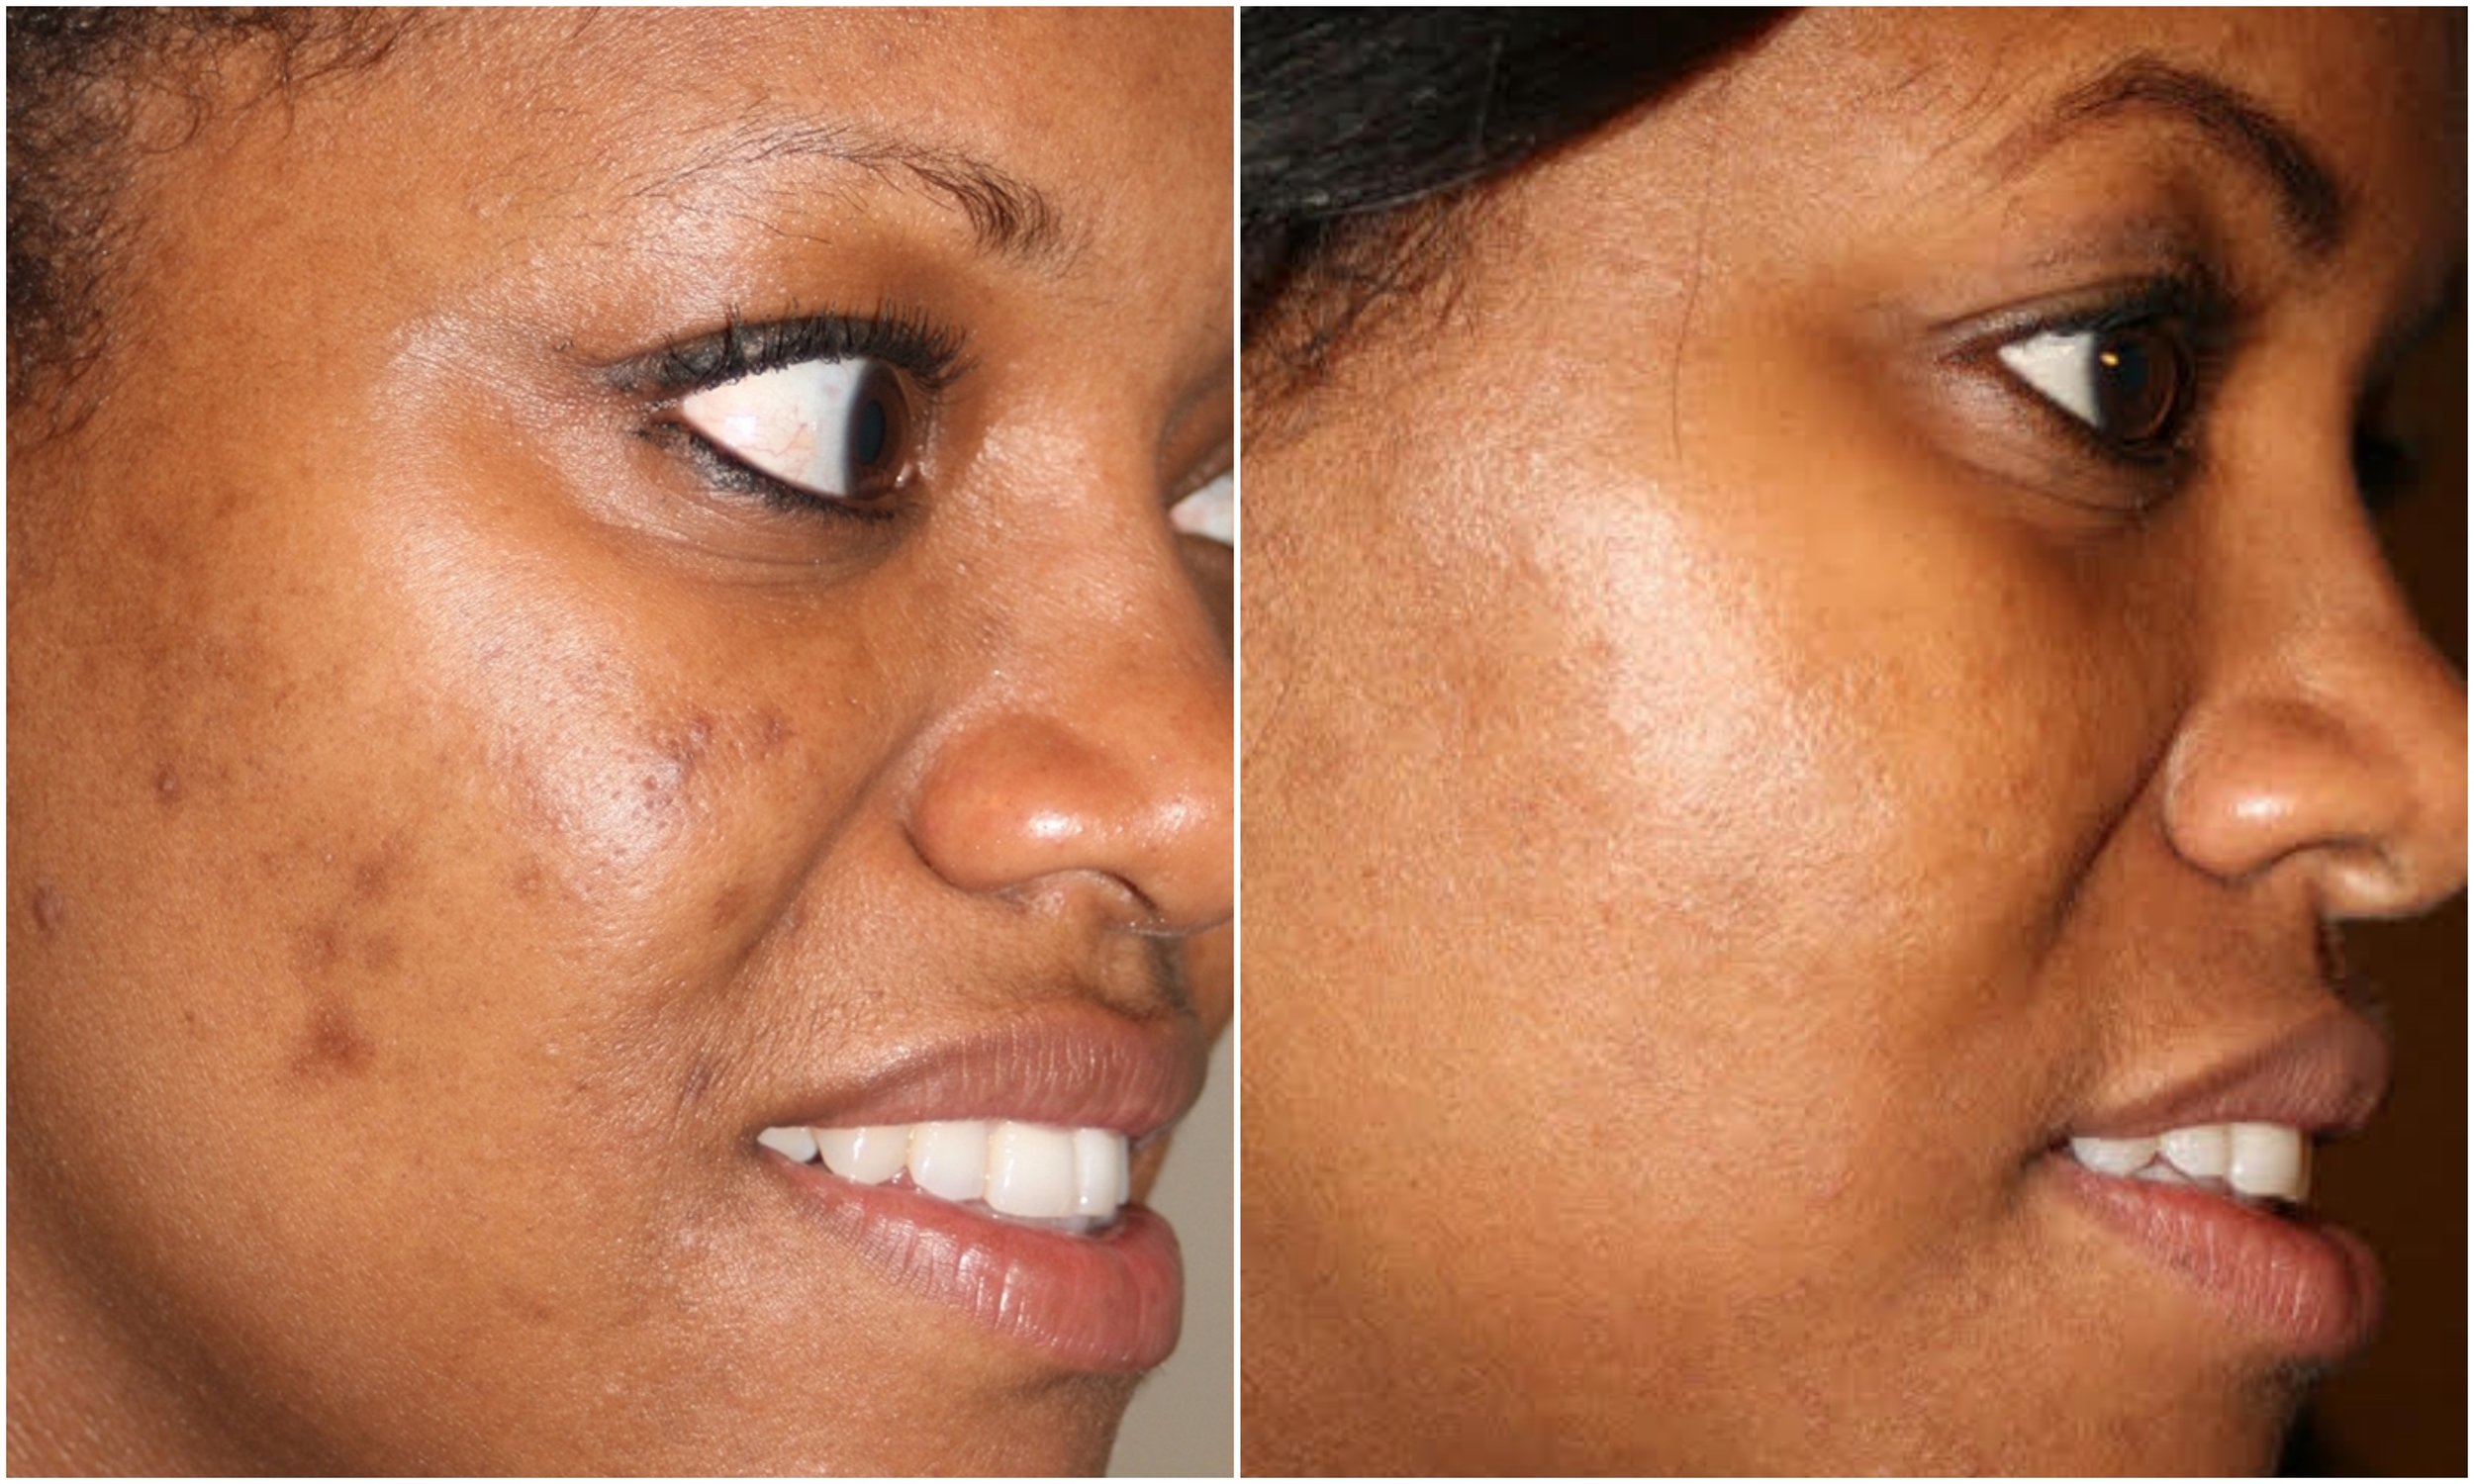 Blemishes cleared, tone/texture cleared using Perfect Derma Peel (Intense Peel)